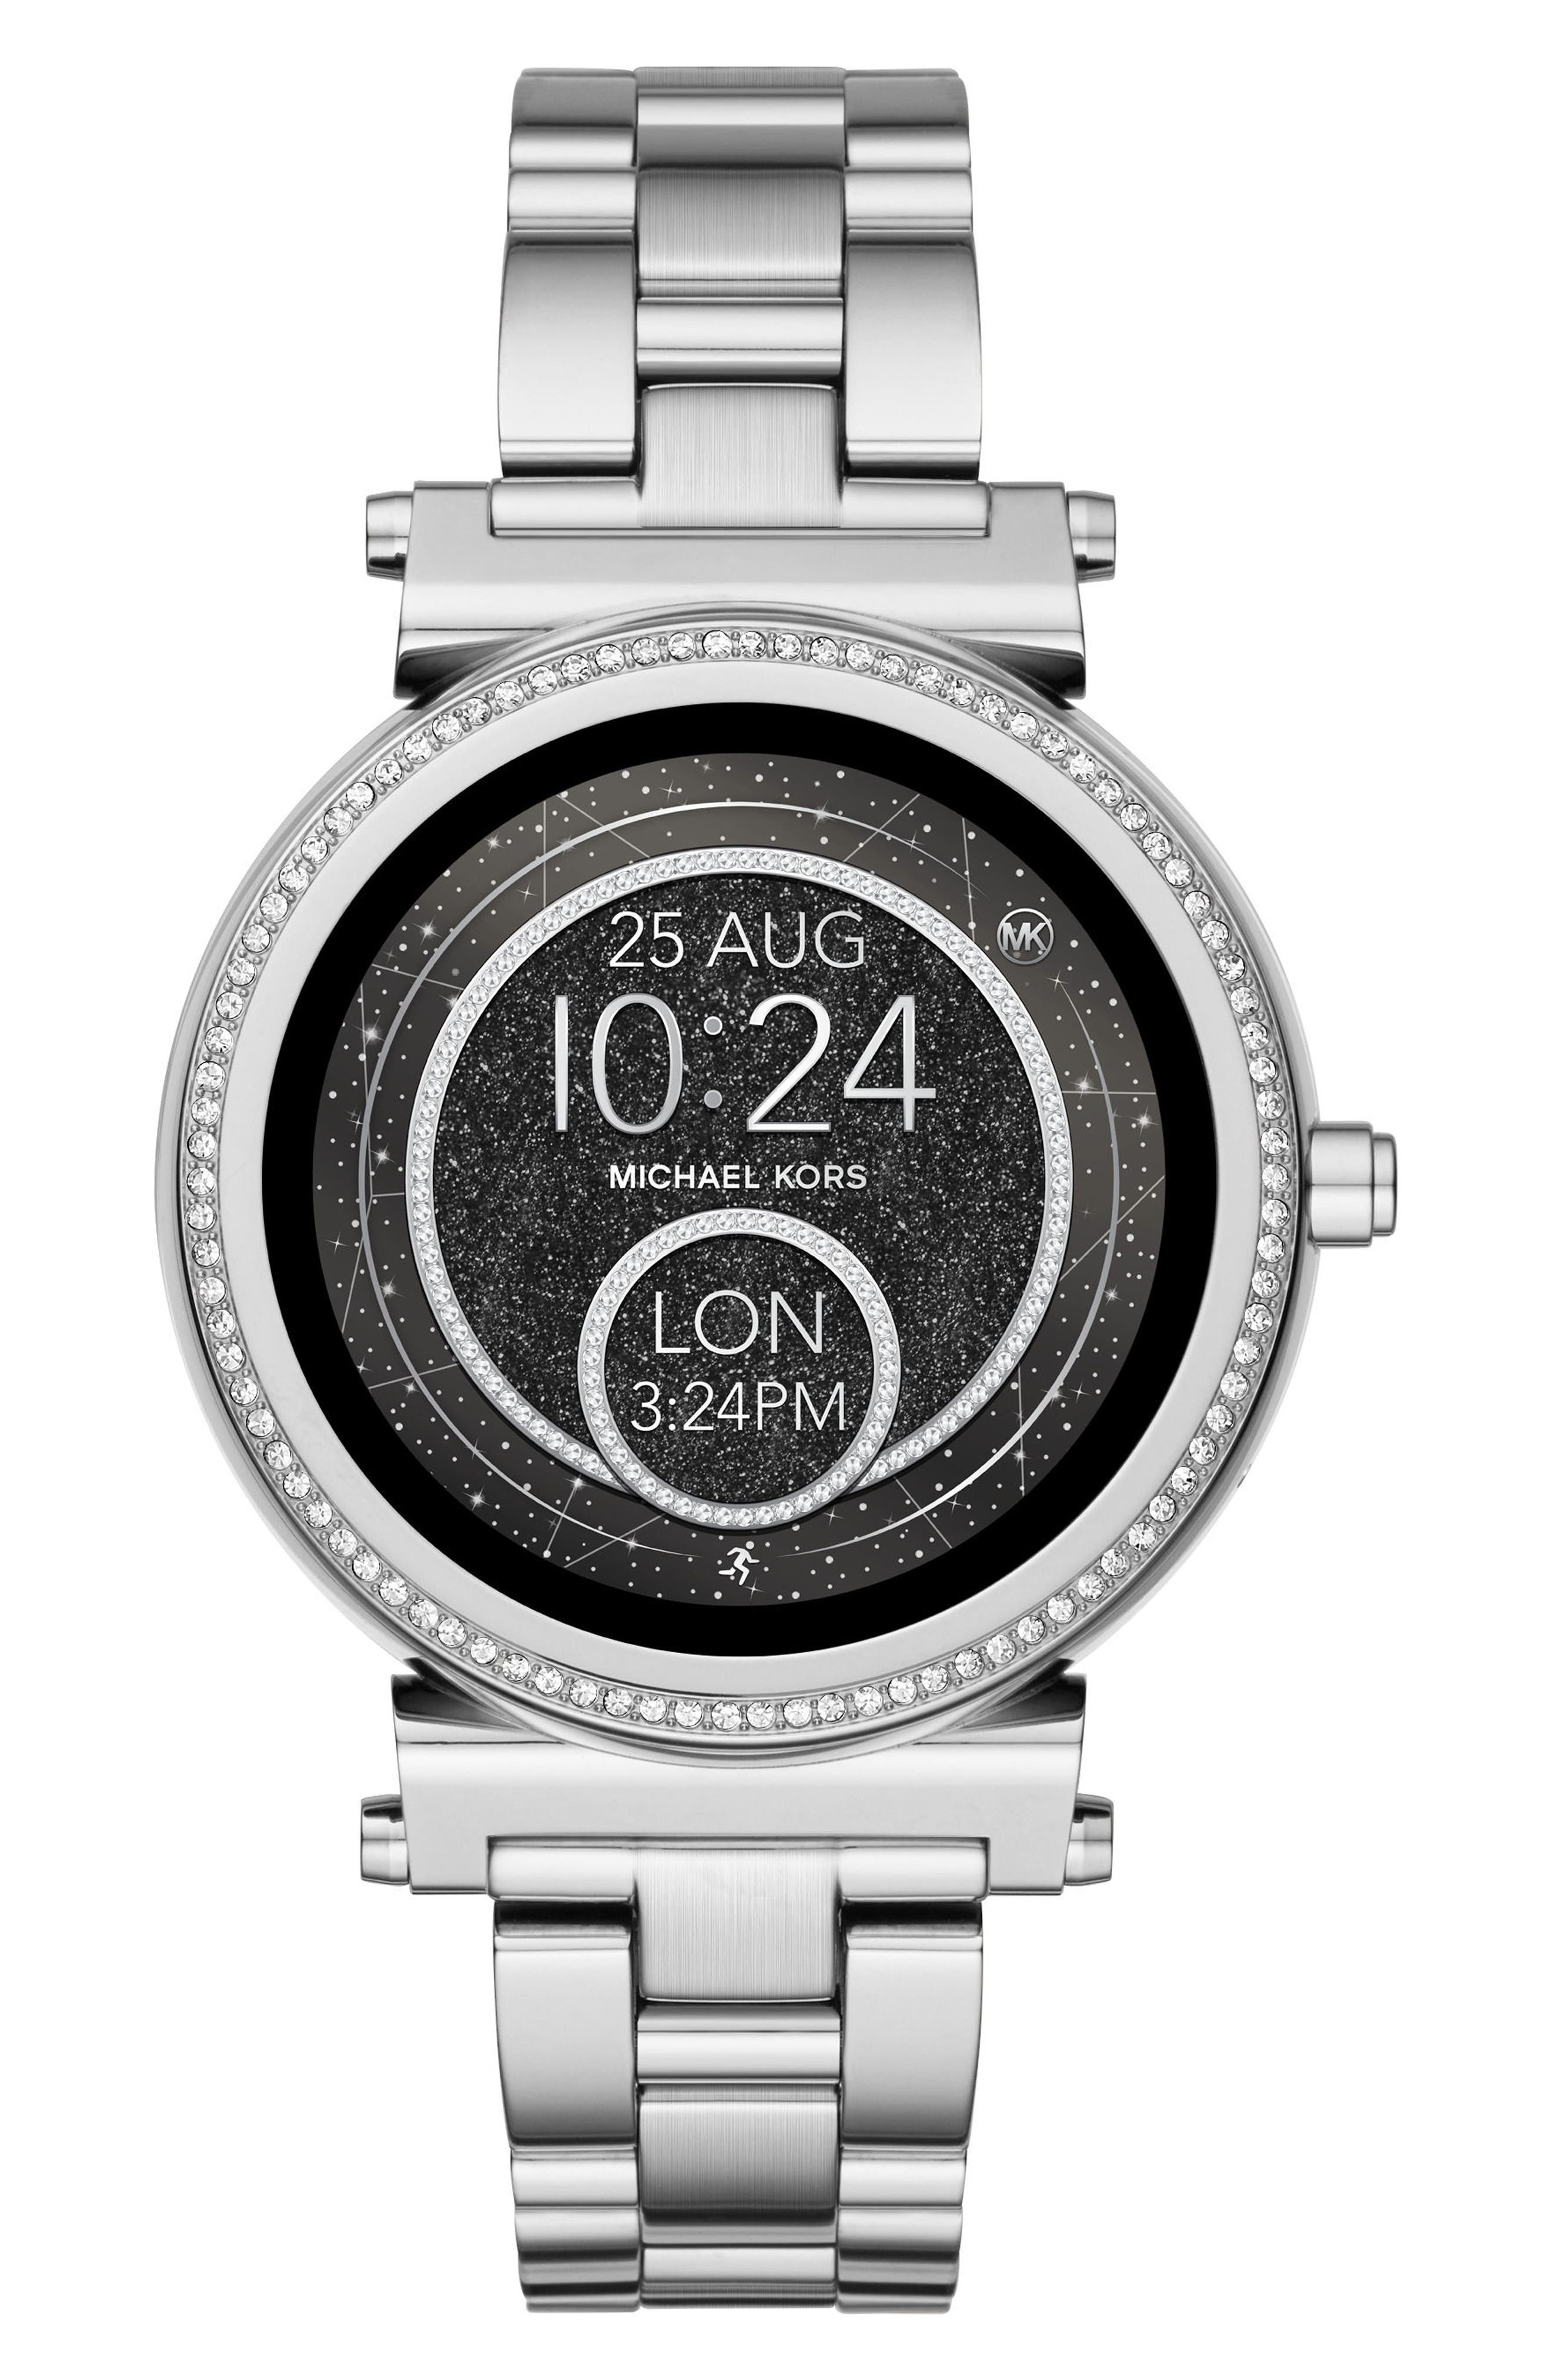 MICHAEL KORS ACCESS Sofie Smart Bracelet Watch, 42Mm in Silver/ Black/ Silver